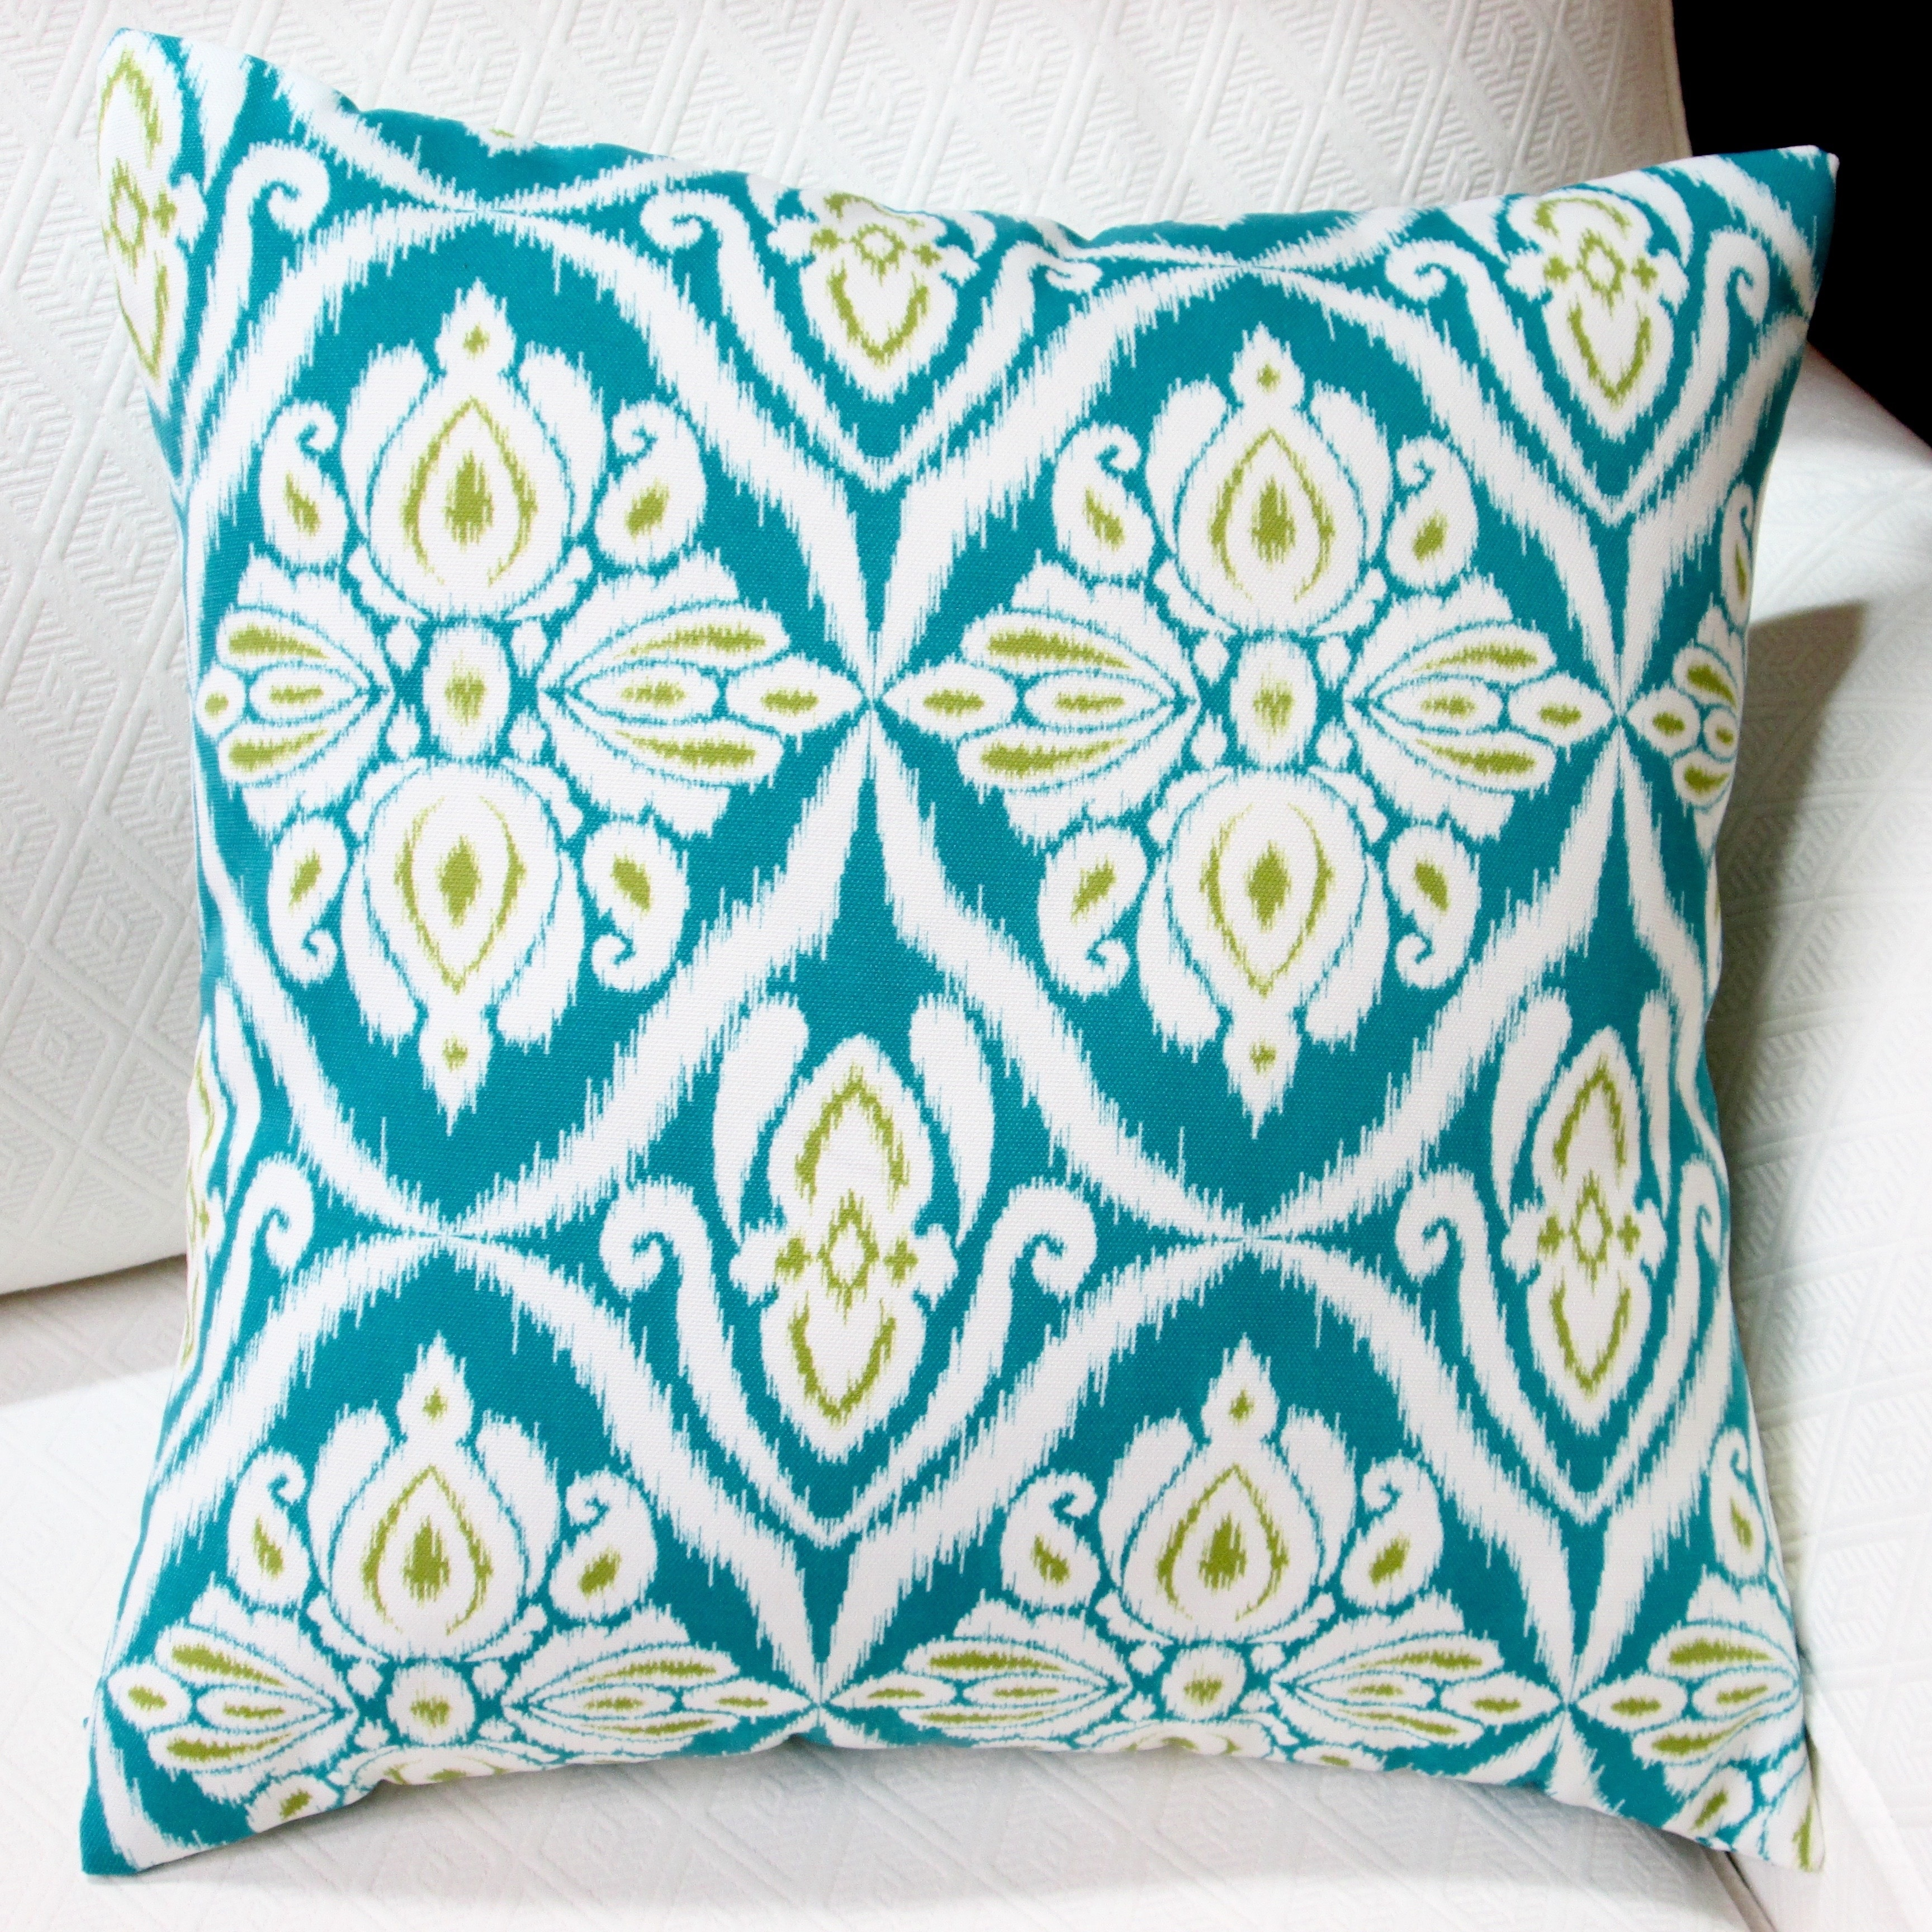 Artisan Pillows Indoor Outdoor 18 Inch Peacock In Blue Modern Geometric Abstract Throw Pillow Set Of 2 Overstock 10353513